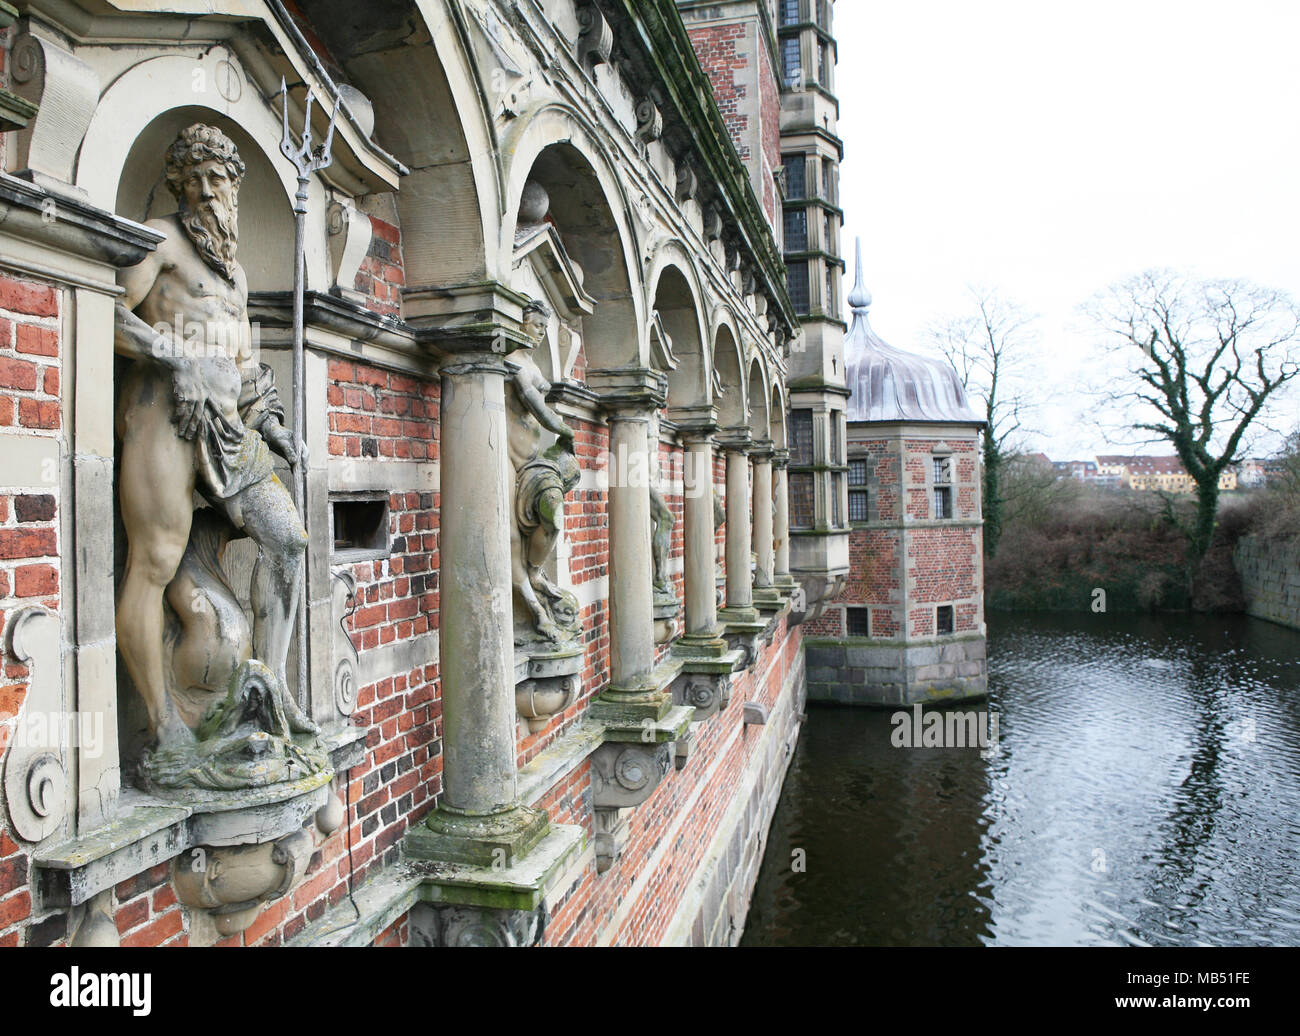 The ditch of the Hillerod castle, Denmark - Stock Image